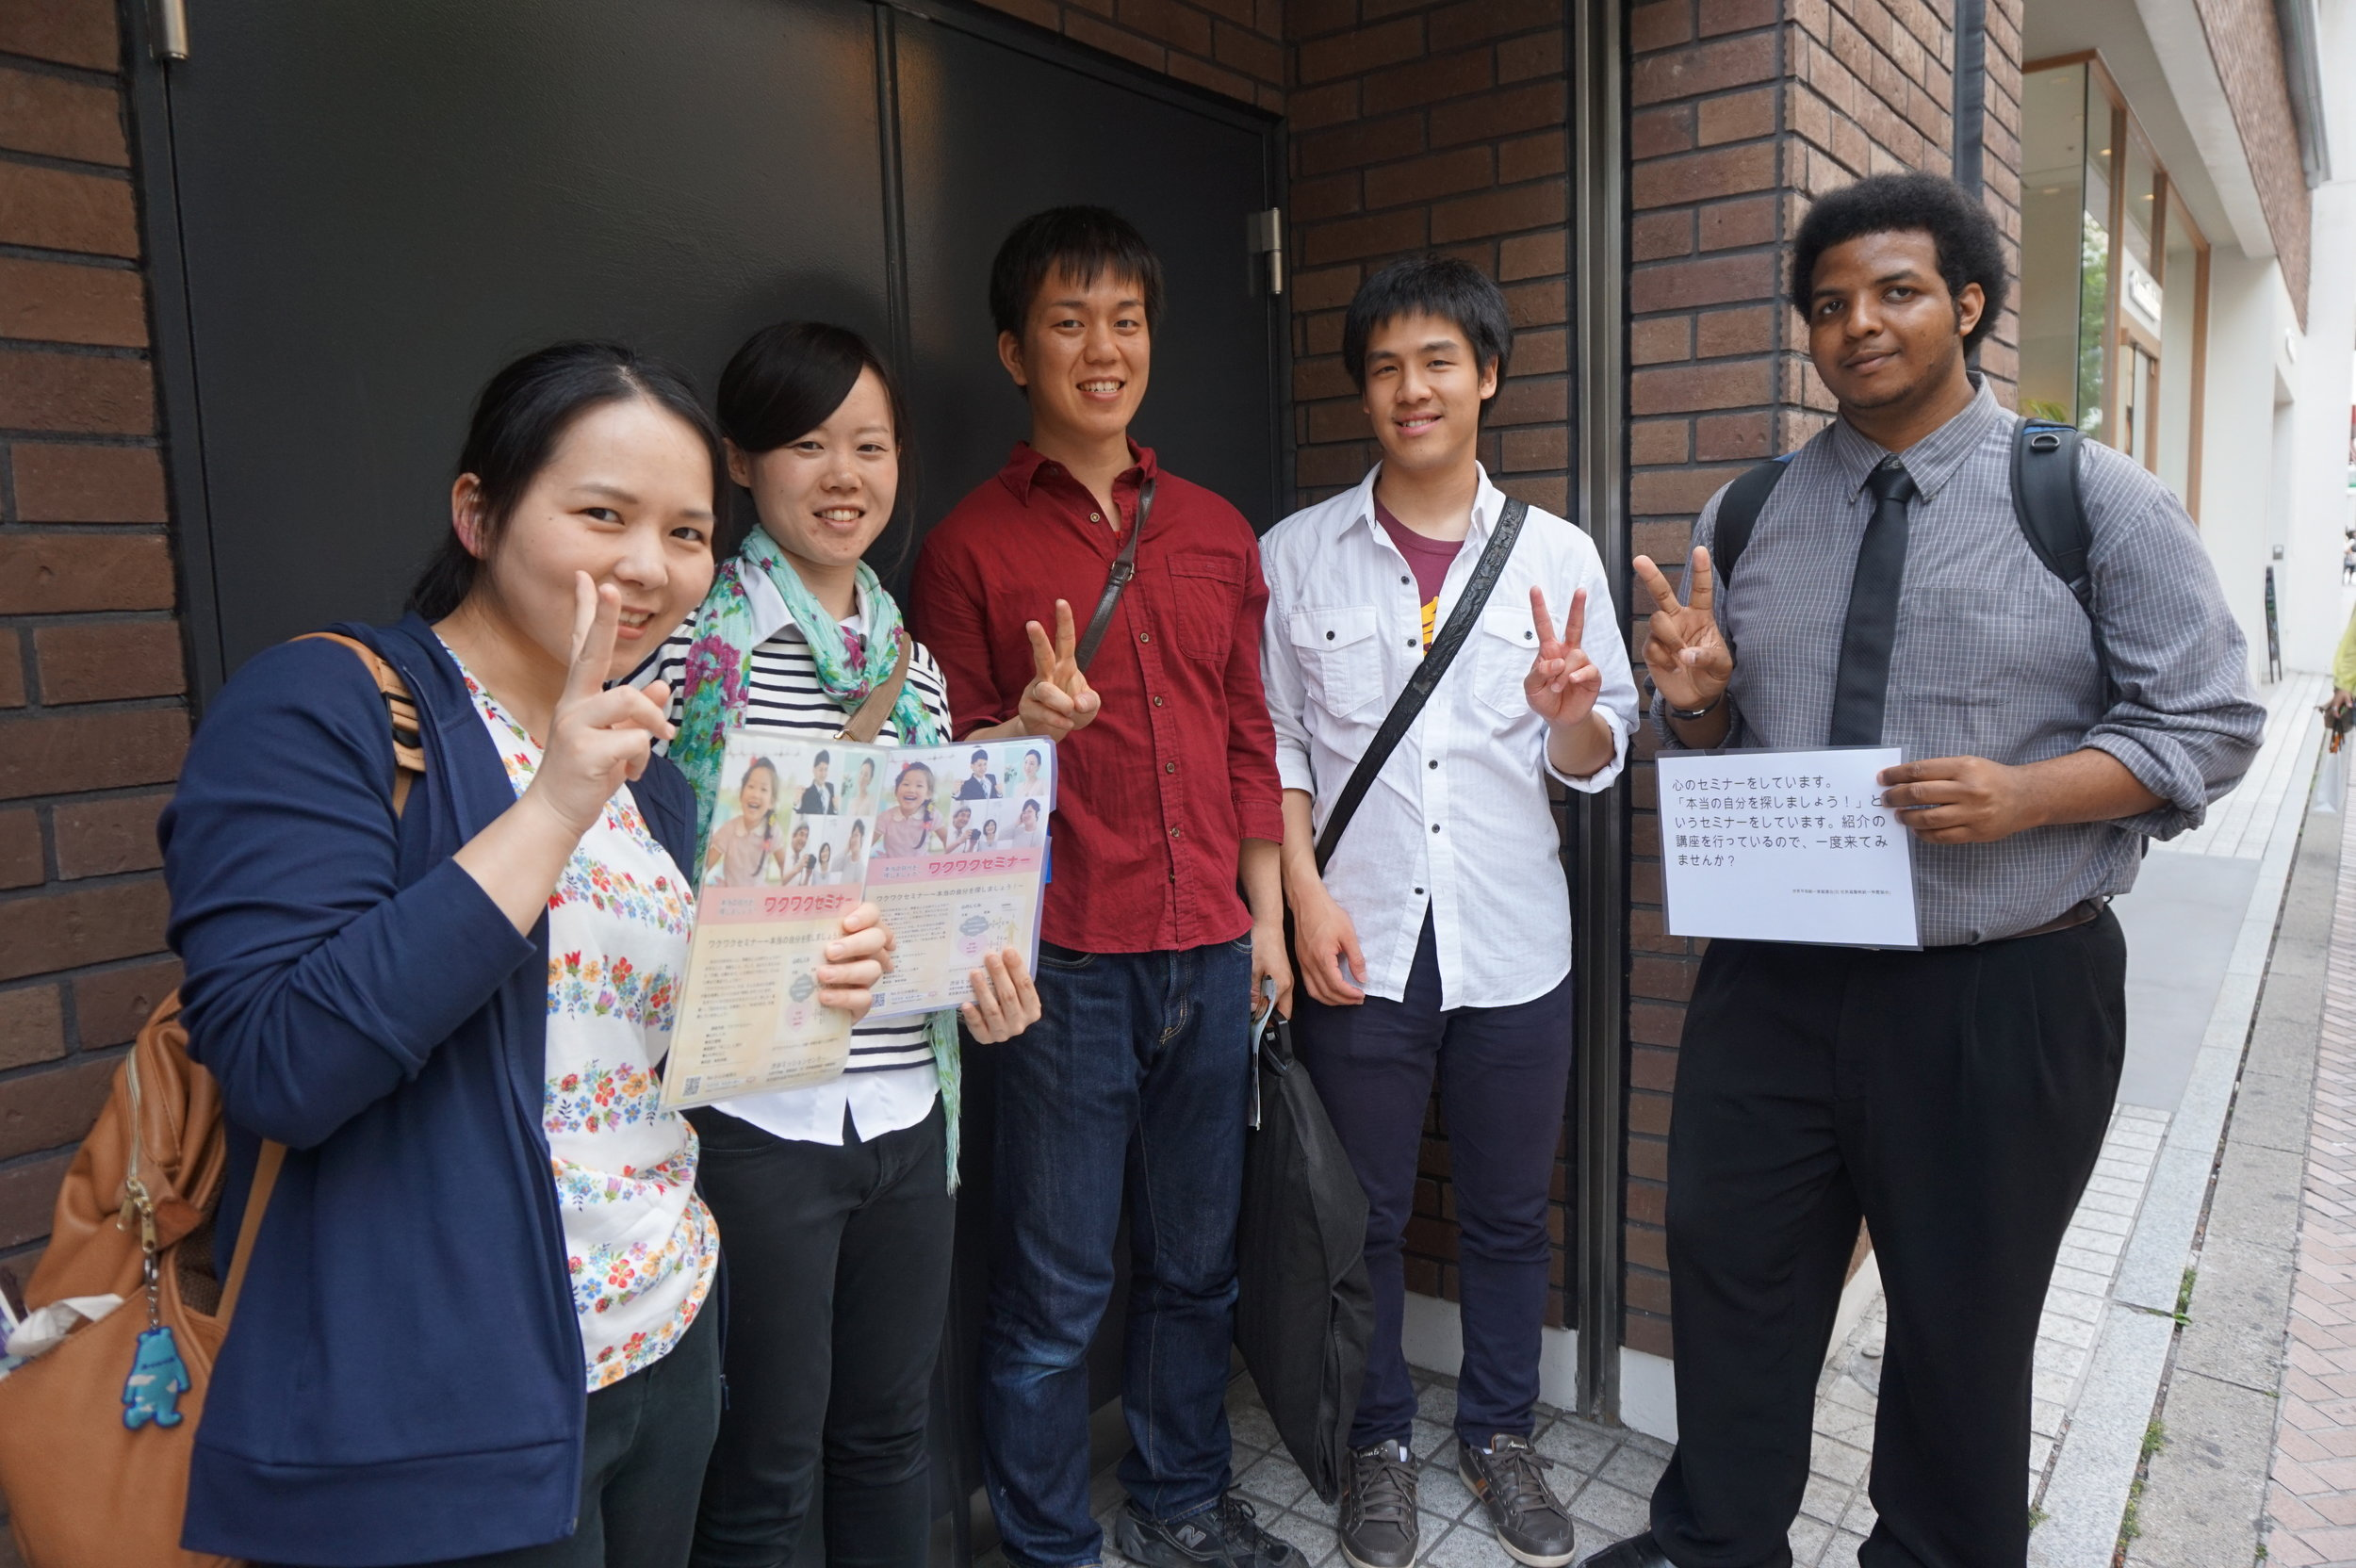 American and Japanese students doing outreach in the local area.